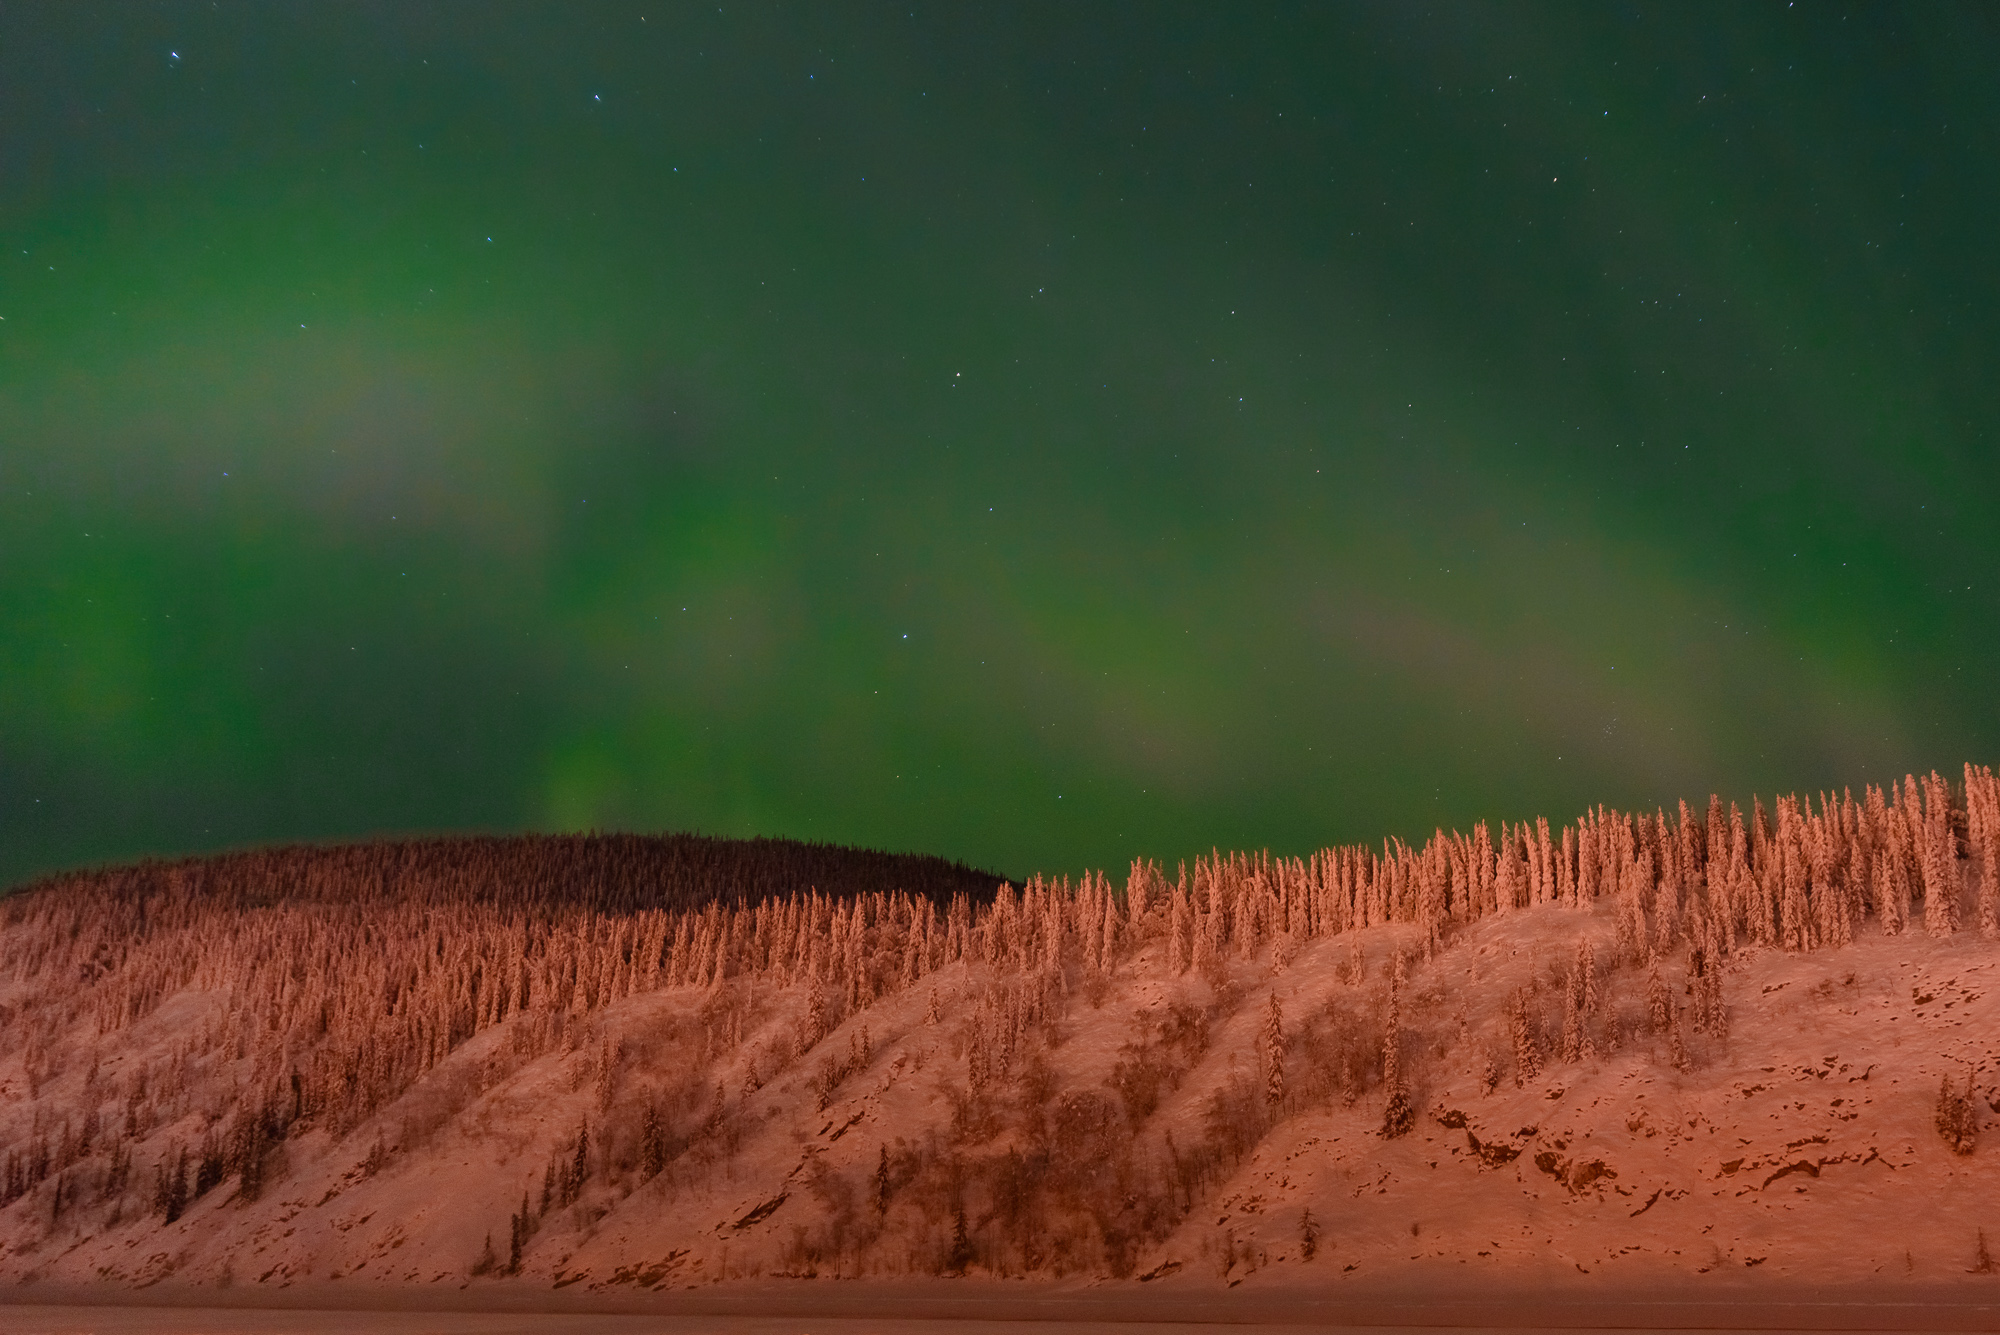 Northern Lights Above the Yukon River at Thirty Below Zero